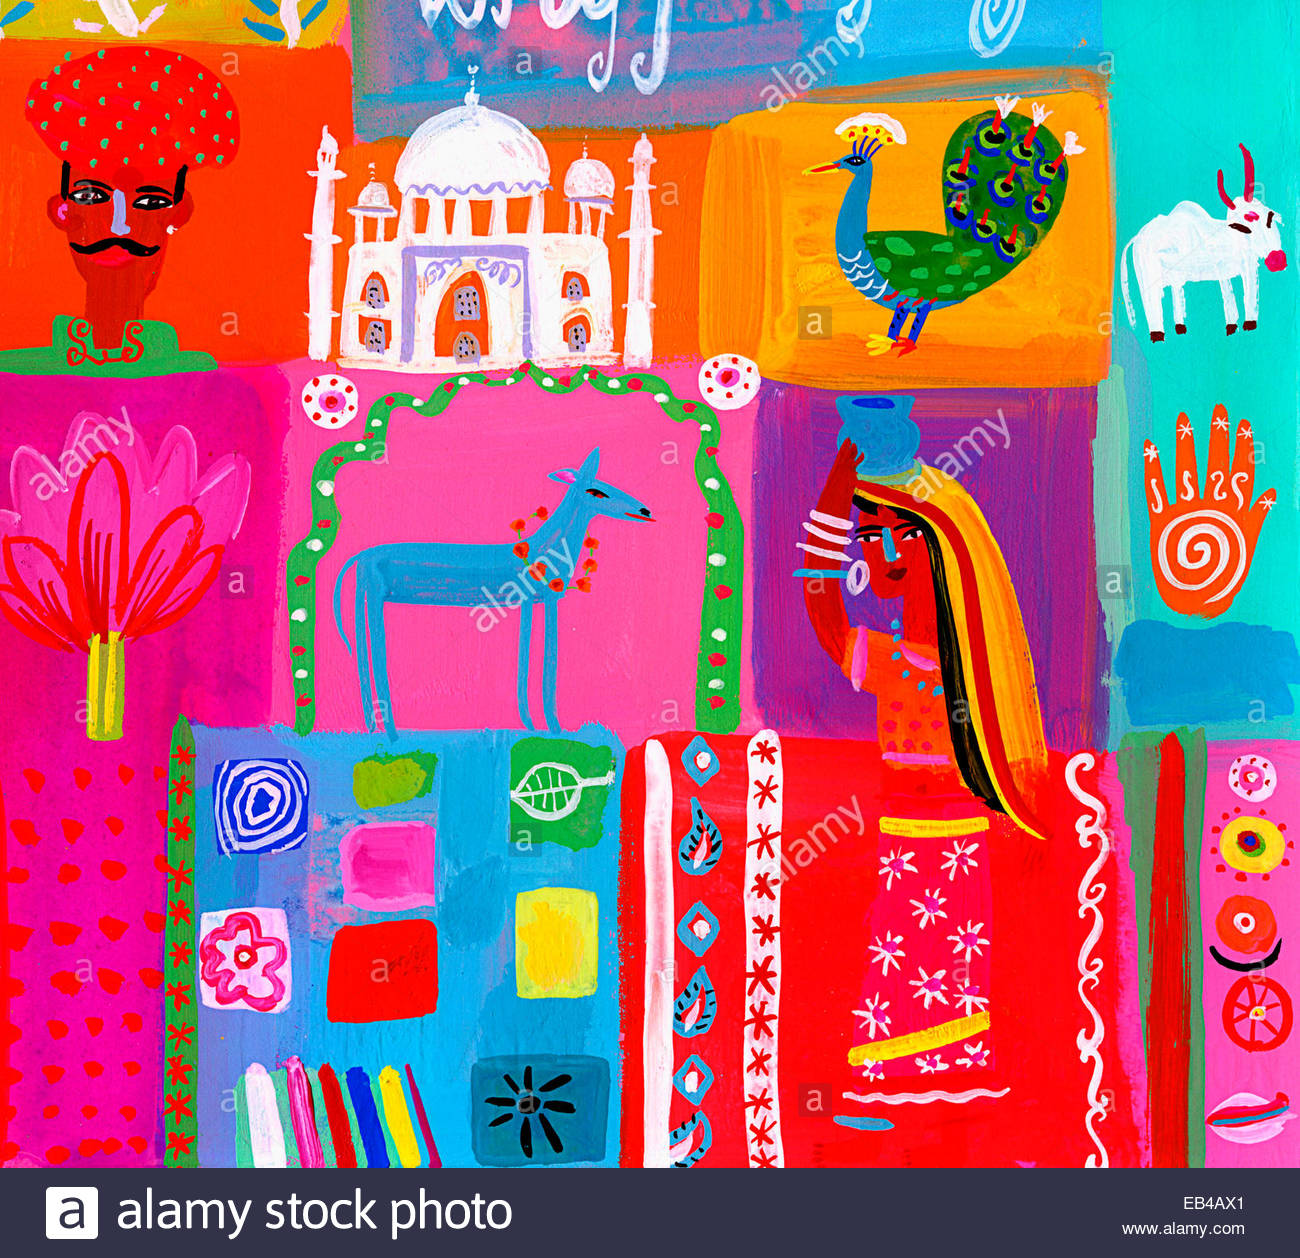 Montage of traditional culture in India - Stock Image